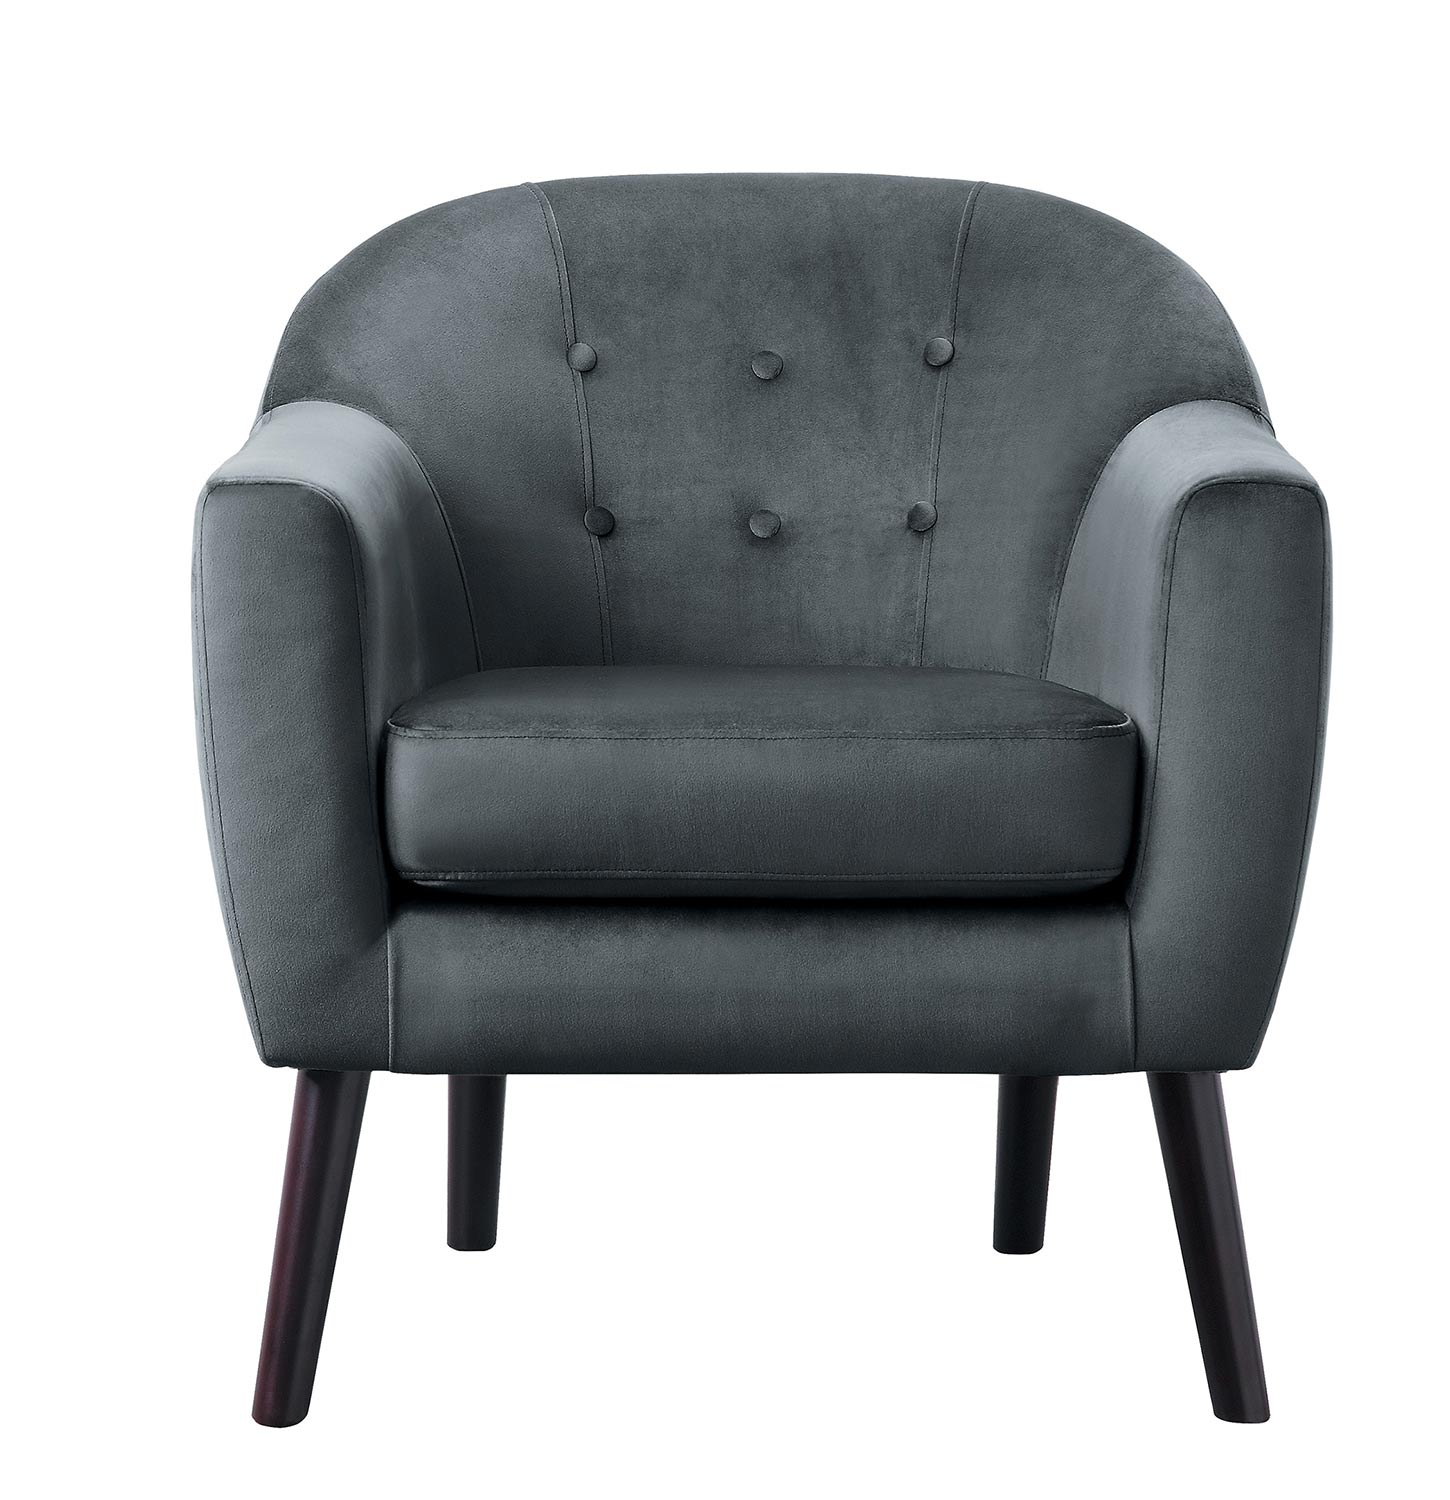 Homelegance Quill Accent Chair - Gray